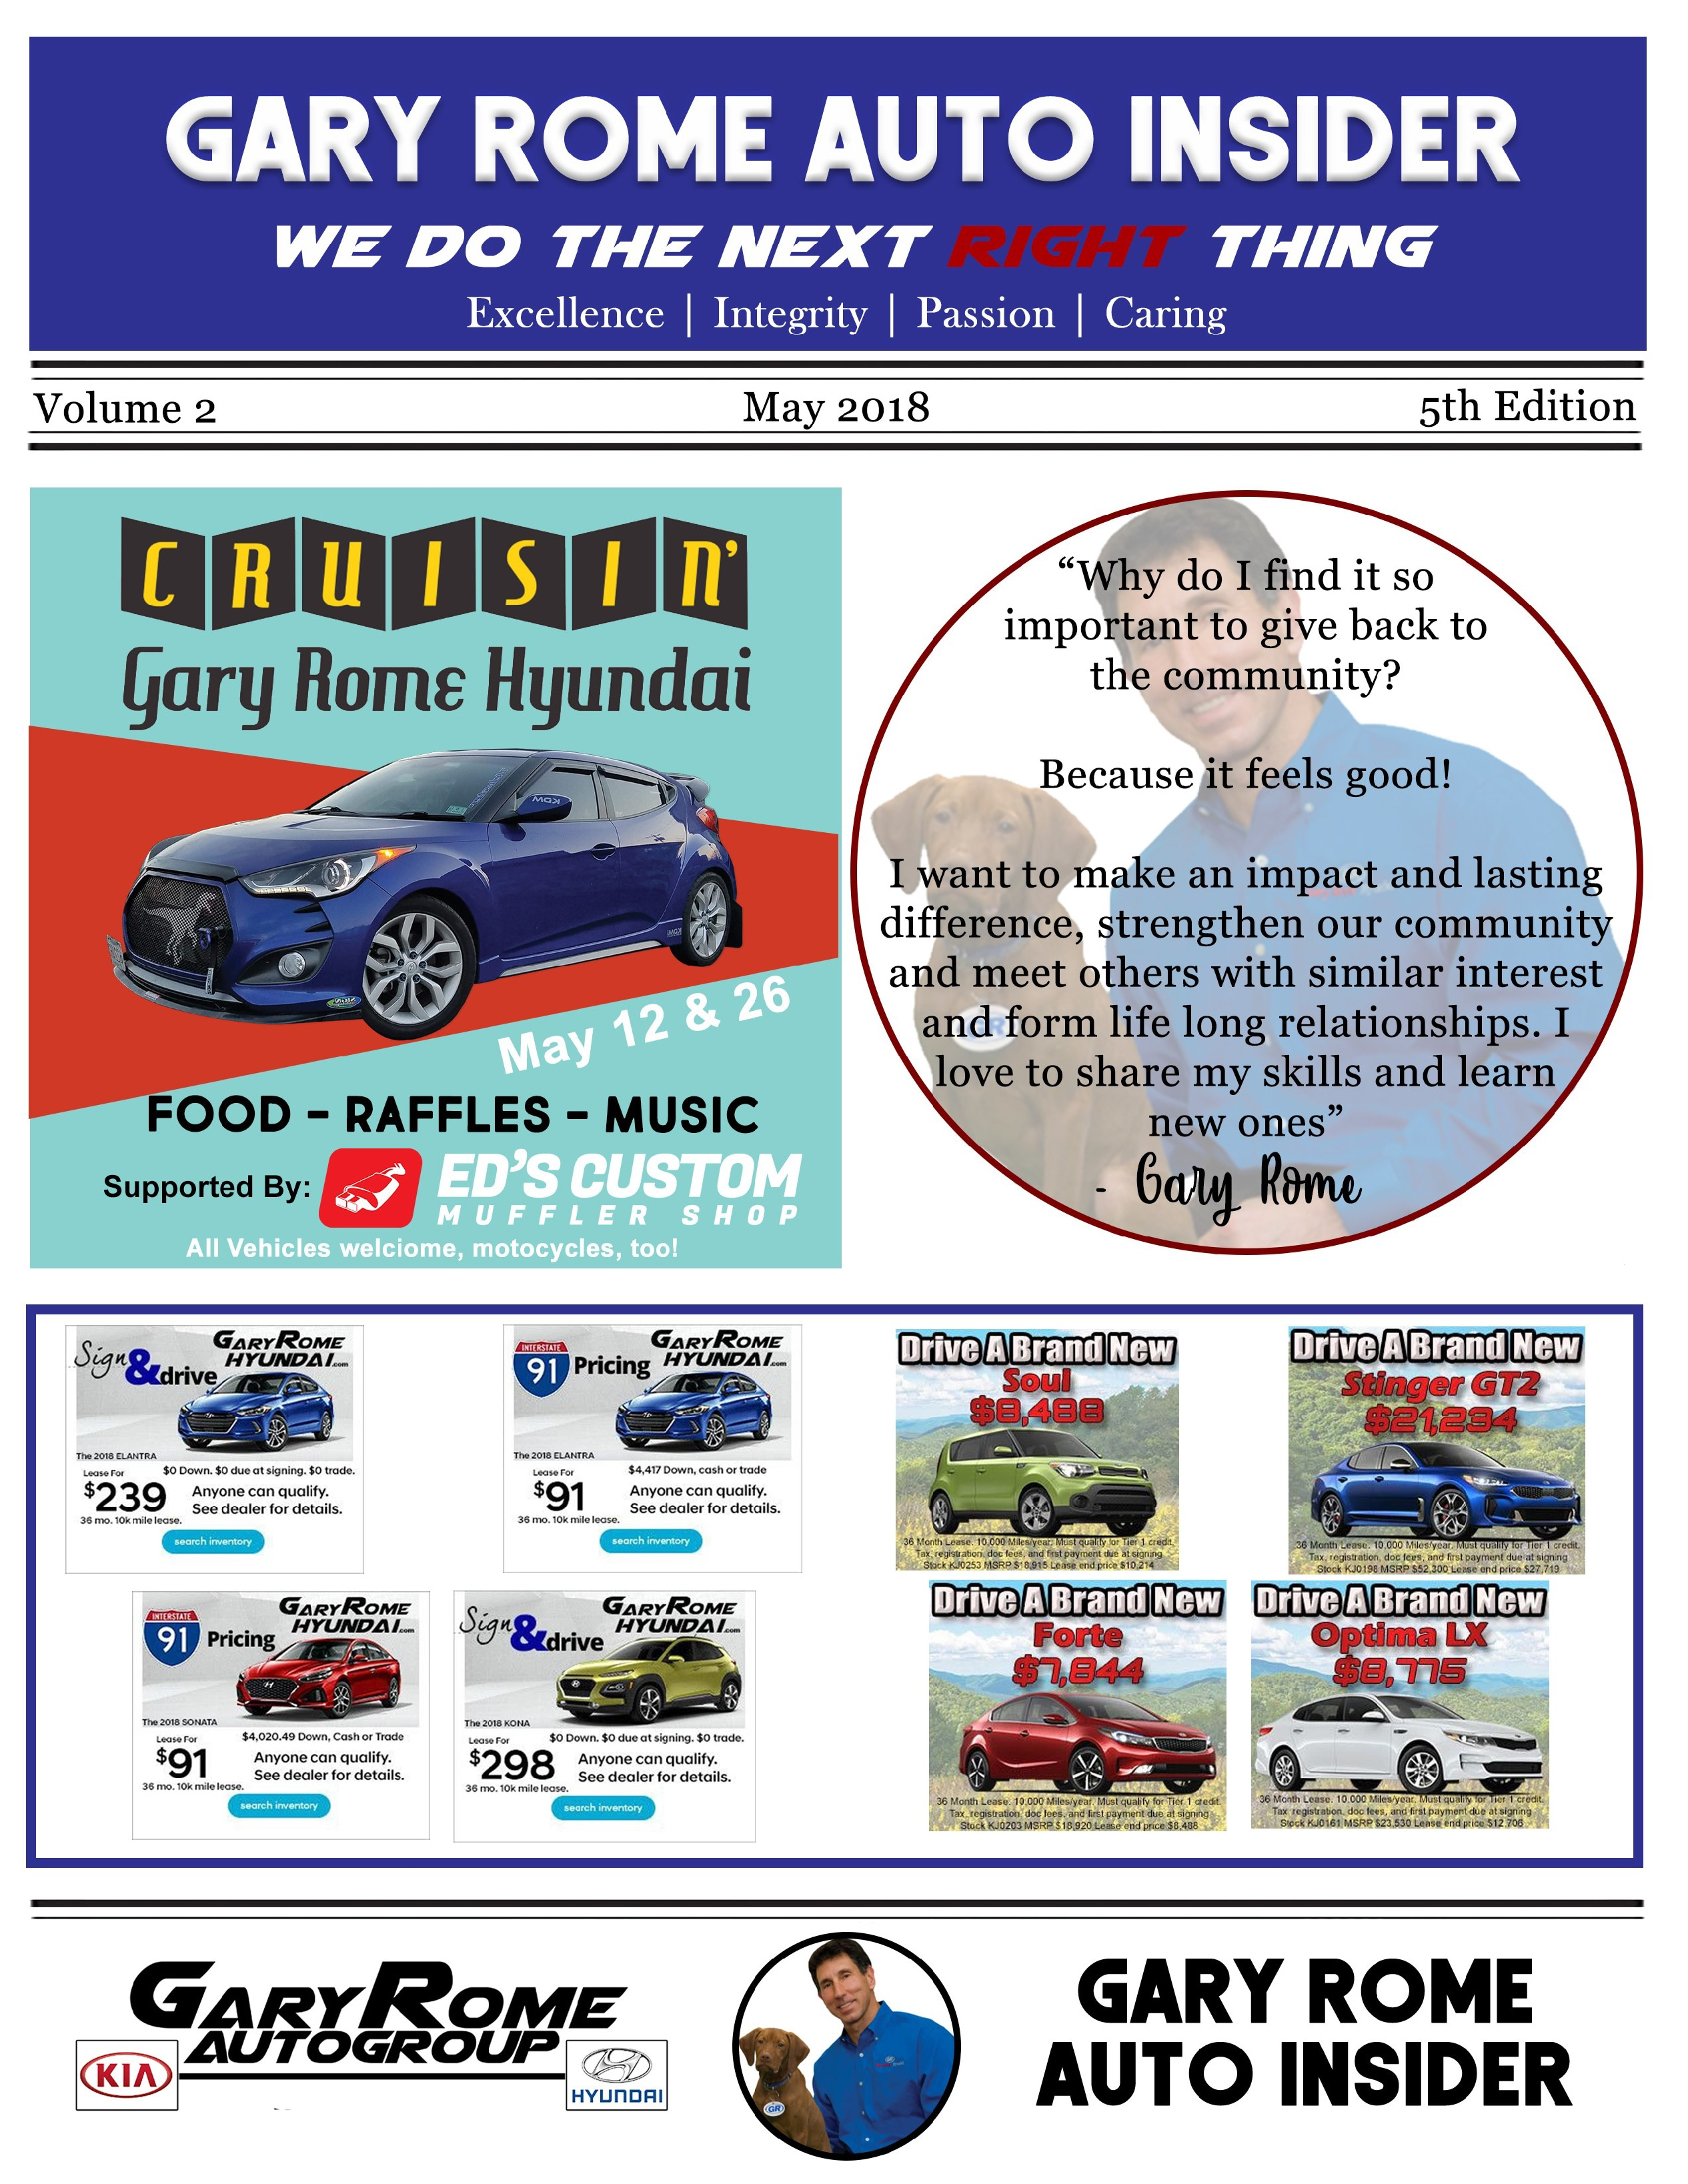 rome enfield dealers ct kia new of contact htm in gary compnay newsletter dealership